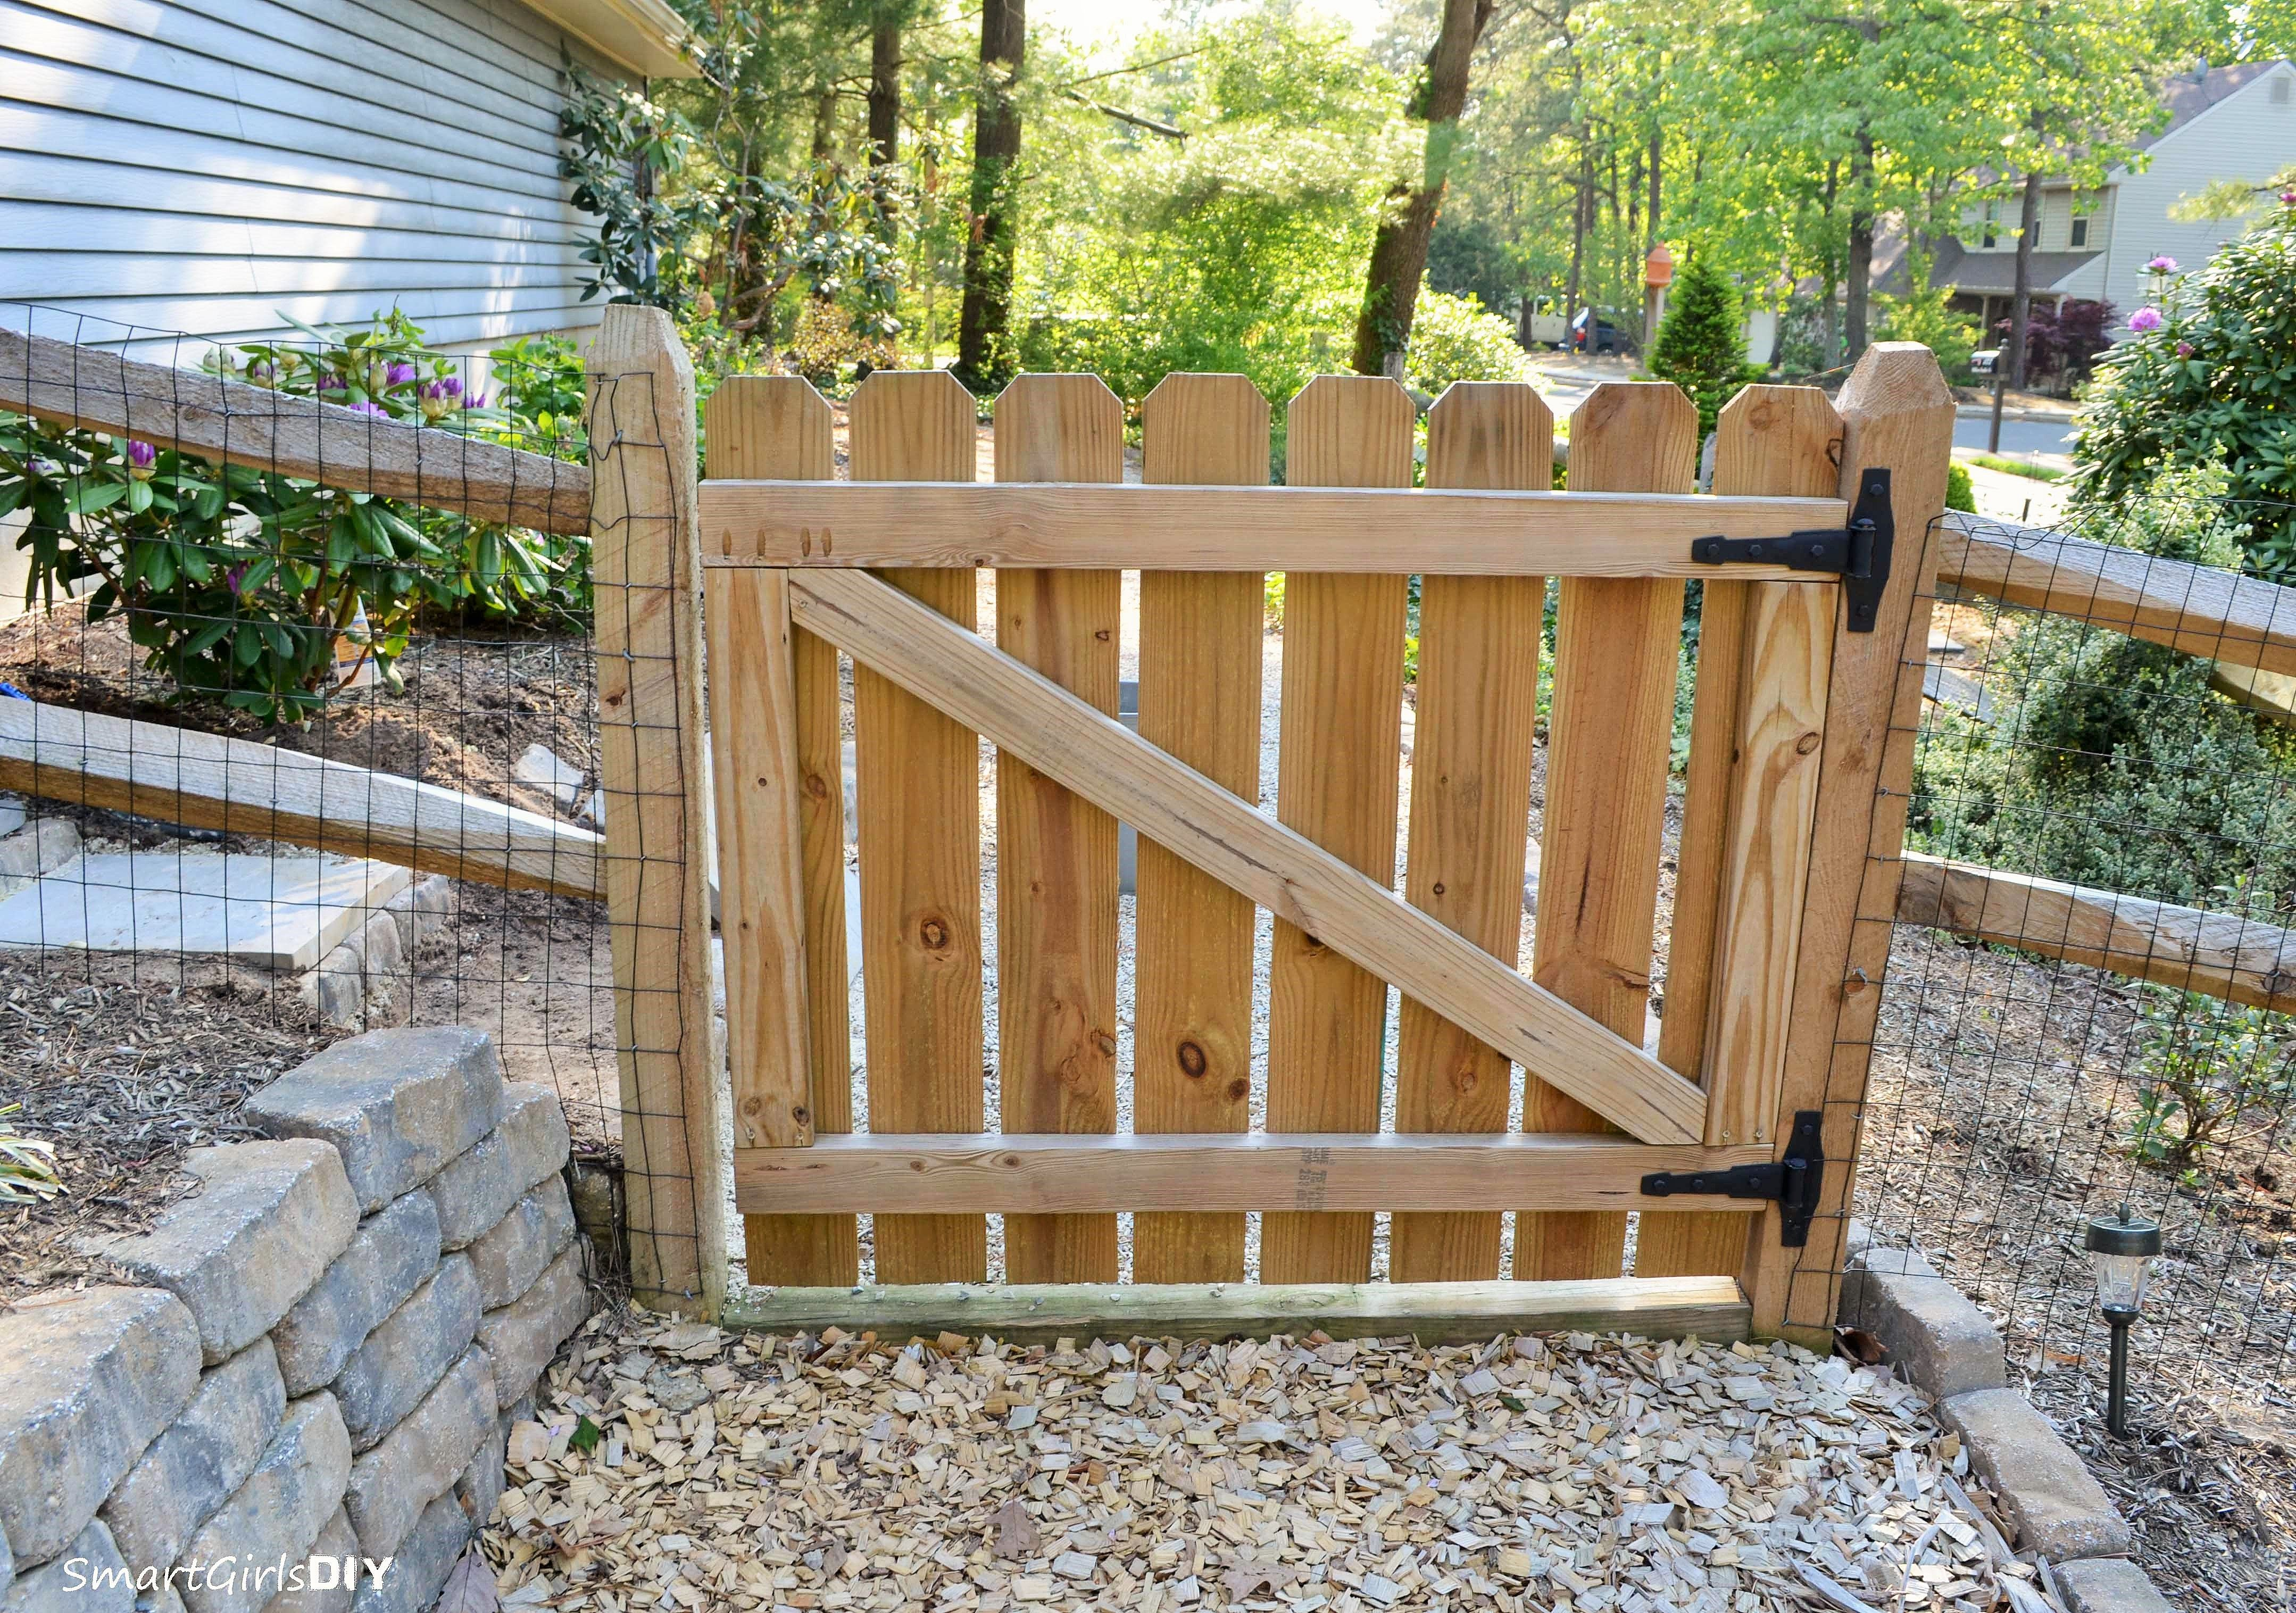 How To Build A Gate For Your Fence Smart Girls Diy Garden Gate